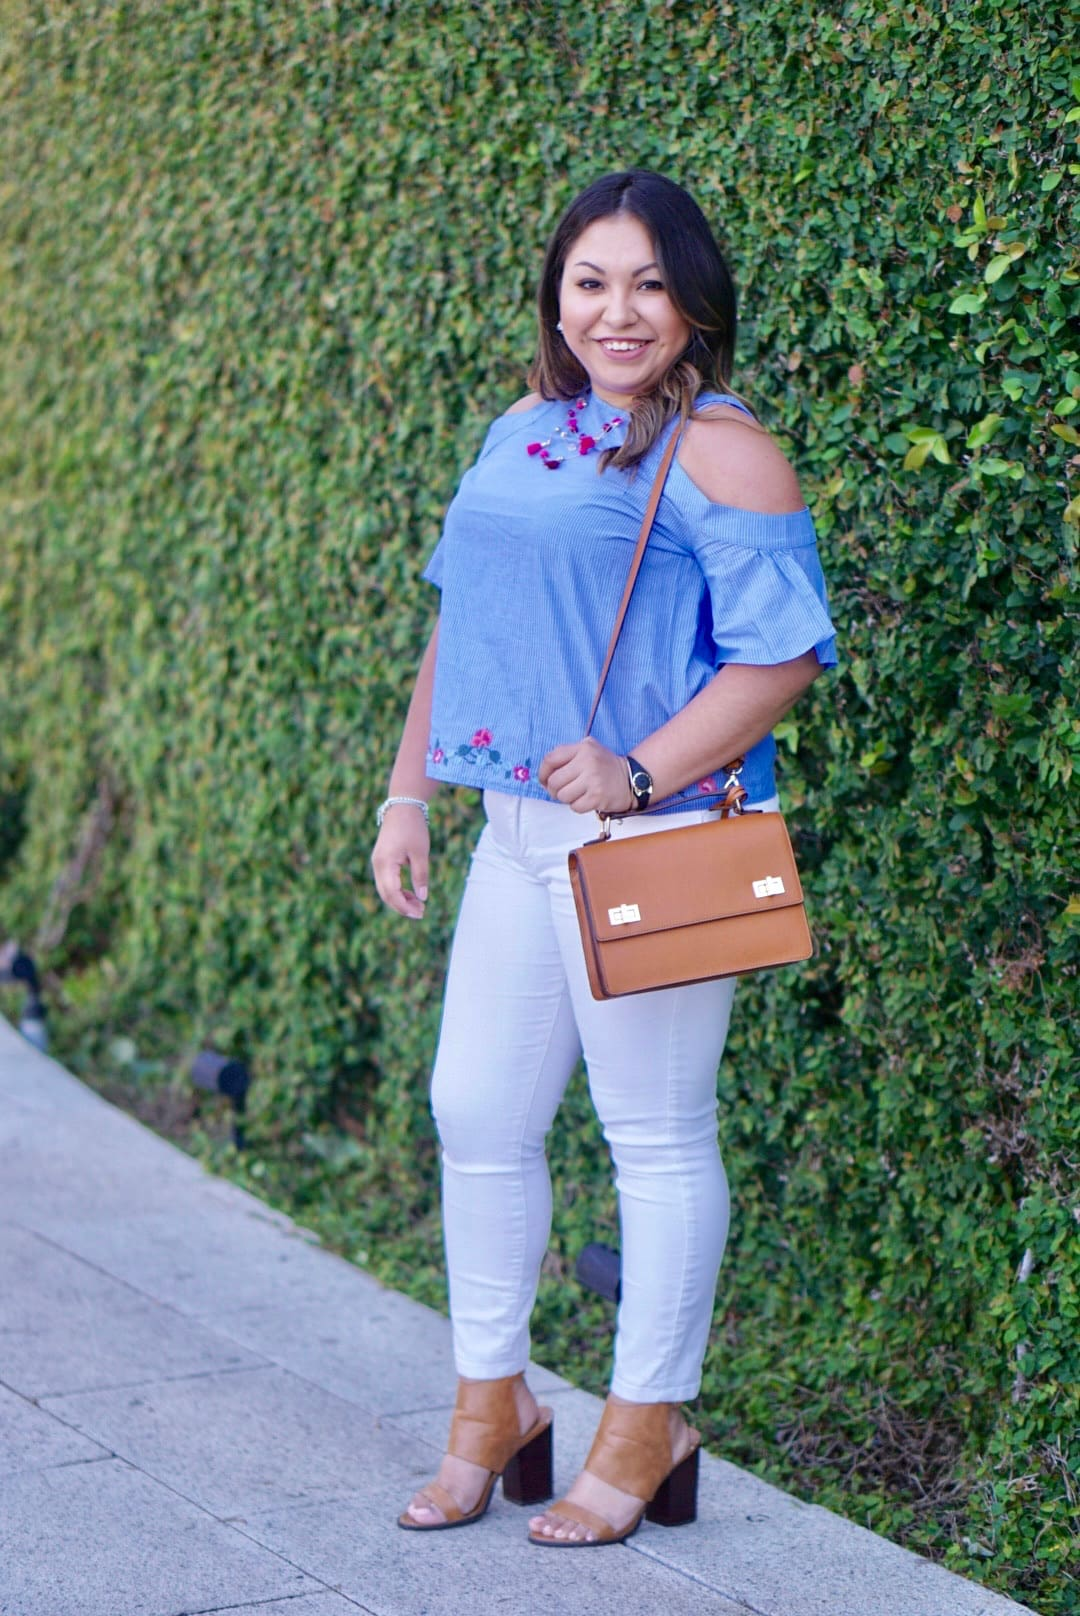 meet lovely silvia, lovely silvia, lovelysilvia, houston blogger,